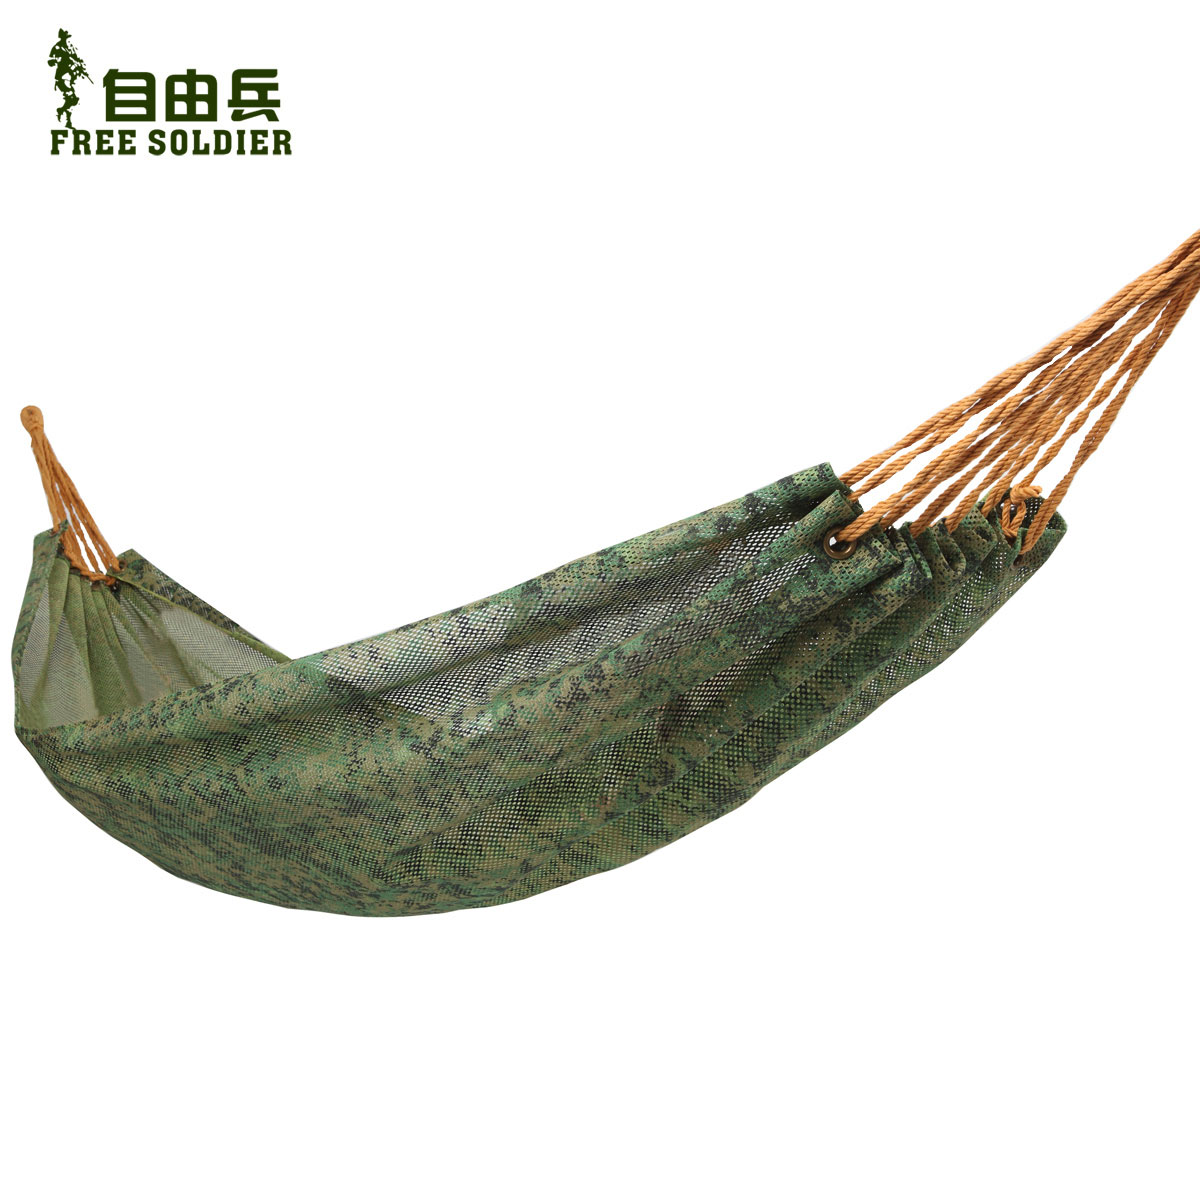 Outdoor Camouflage net camping hammock swing breathable hole hammock double bed lashing()